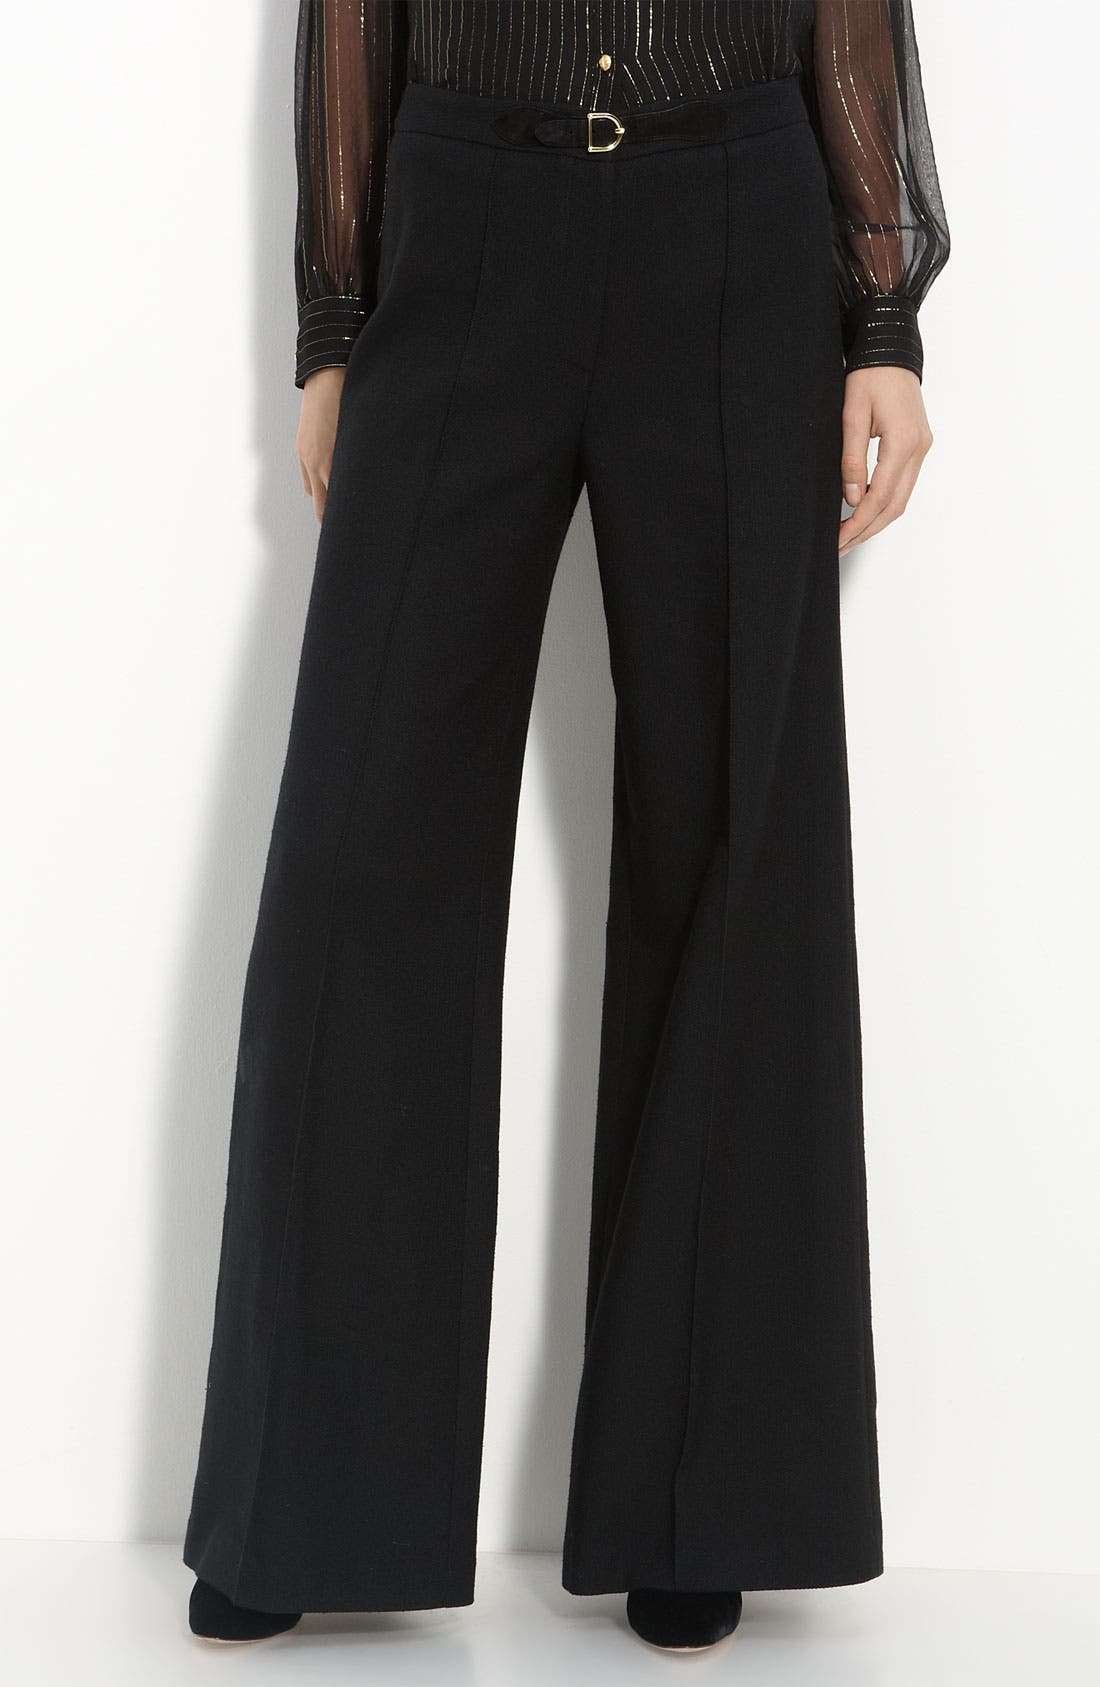 Alternate Image 1 Selected - Milly 'Trish' Suede Tab Trim Trousers